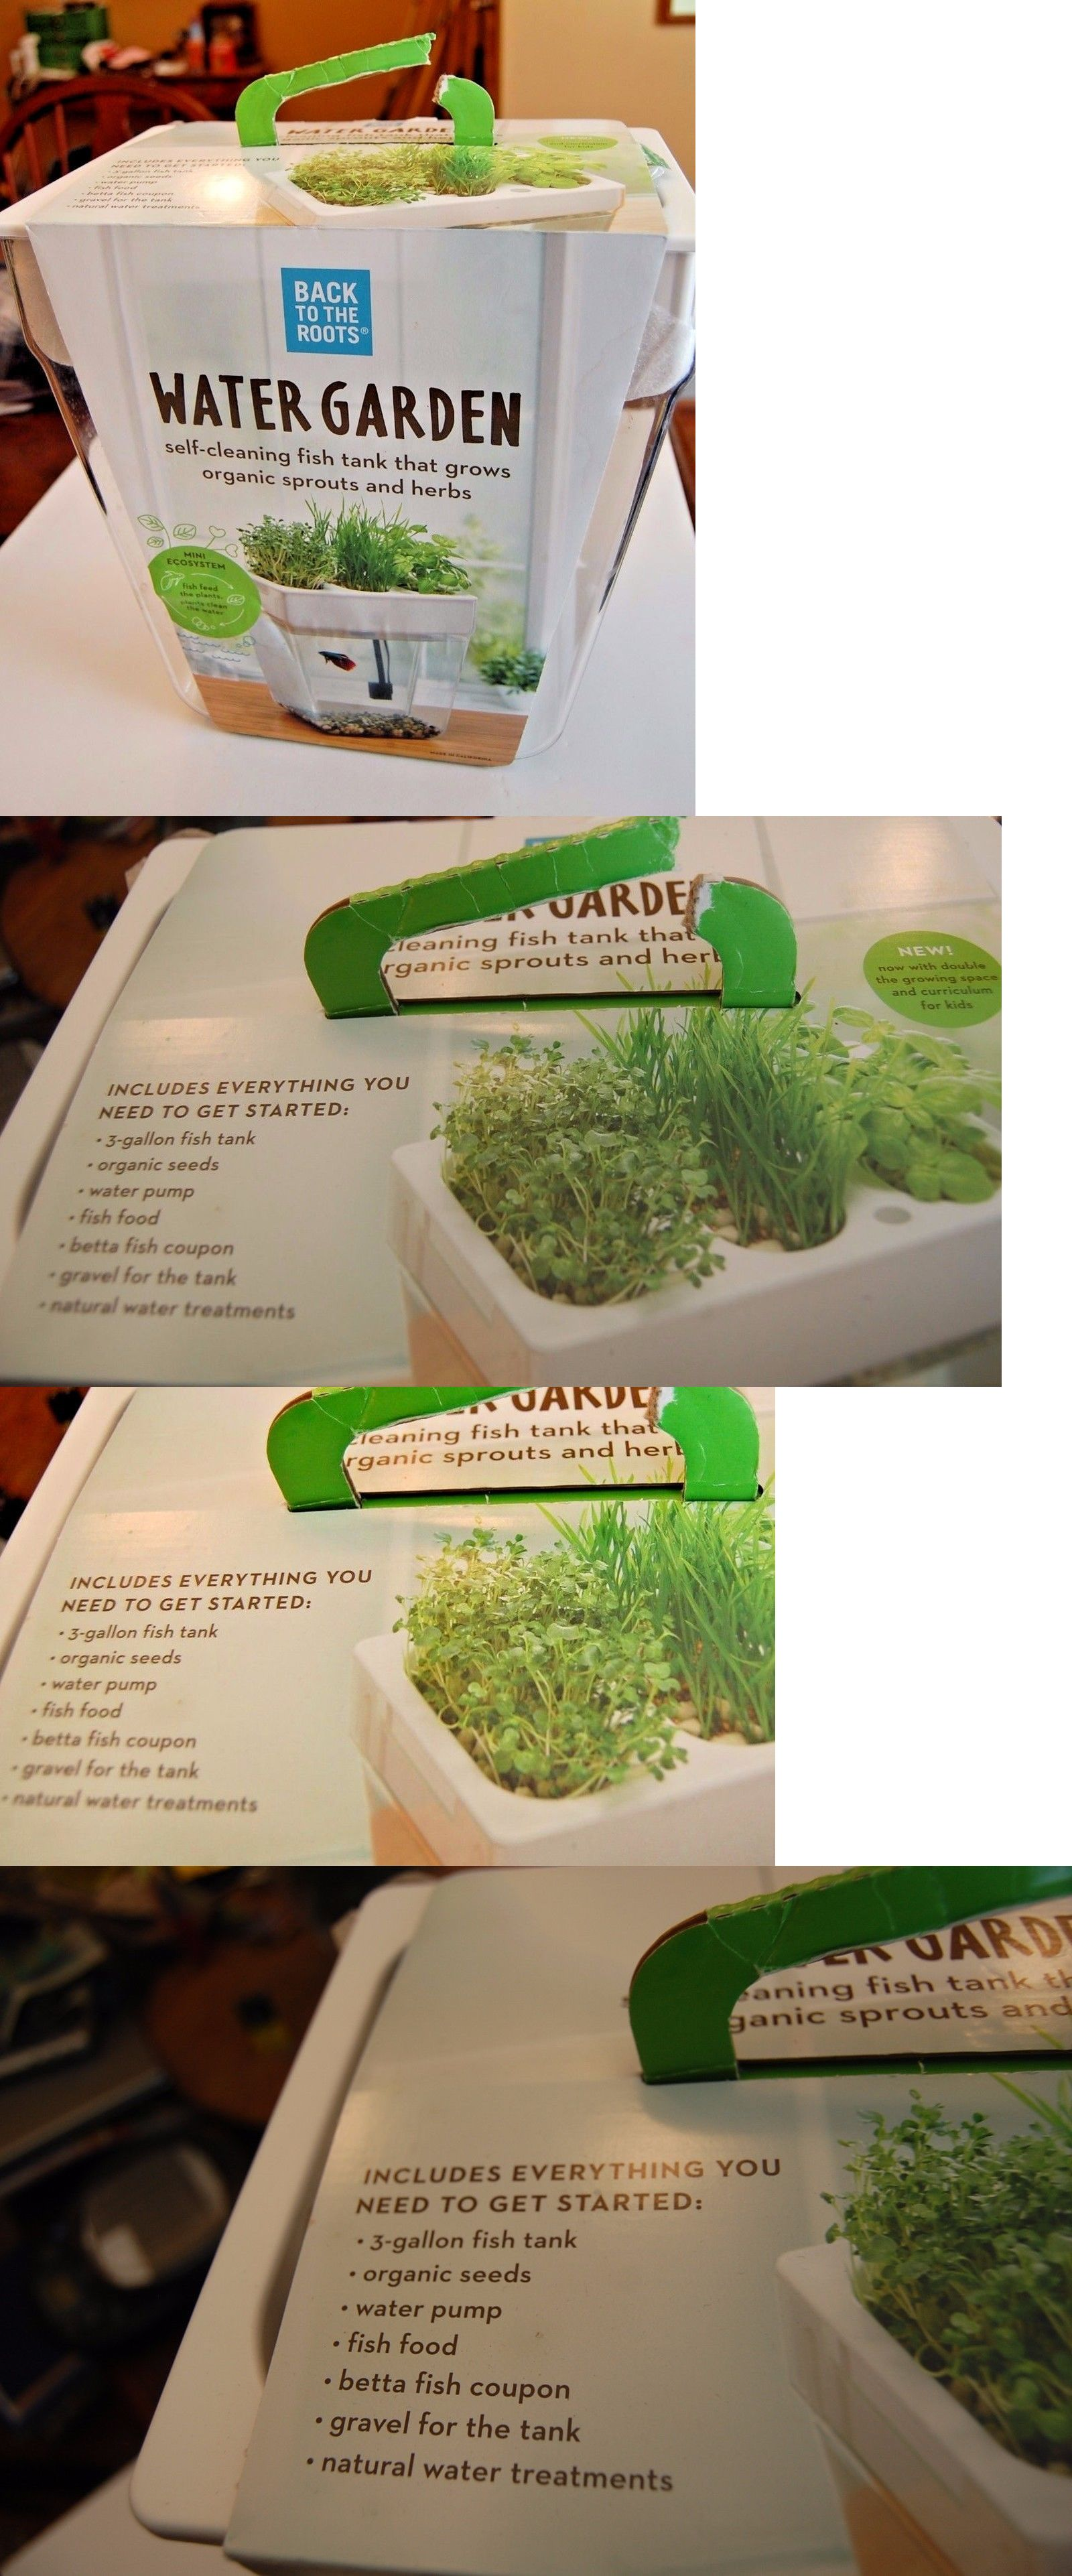 Self Cleaning Fish Tank Garden Aquariums And Tanks 20755 Water Garden Back To The Roots Self